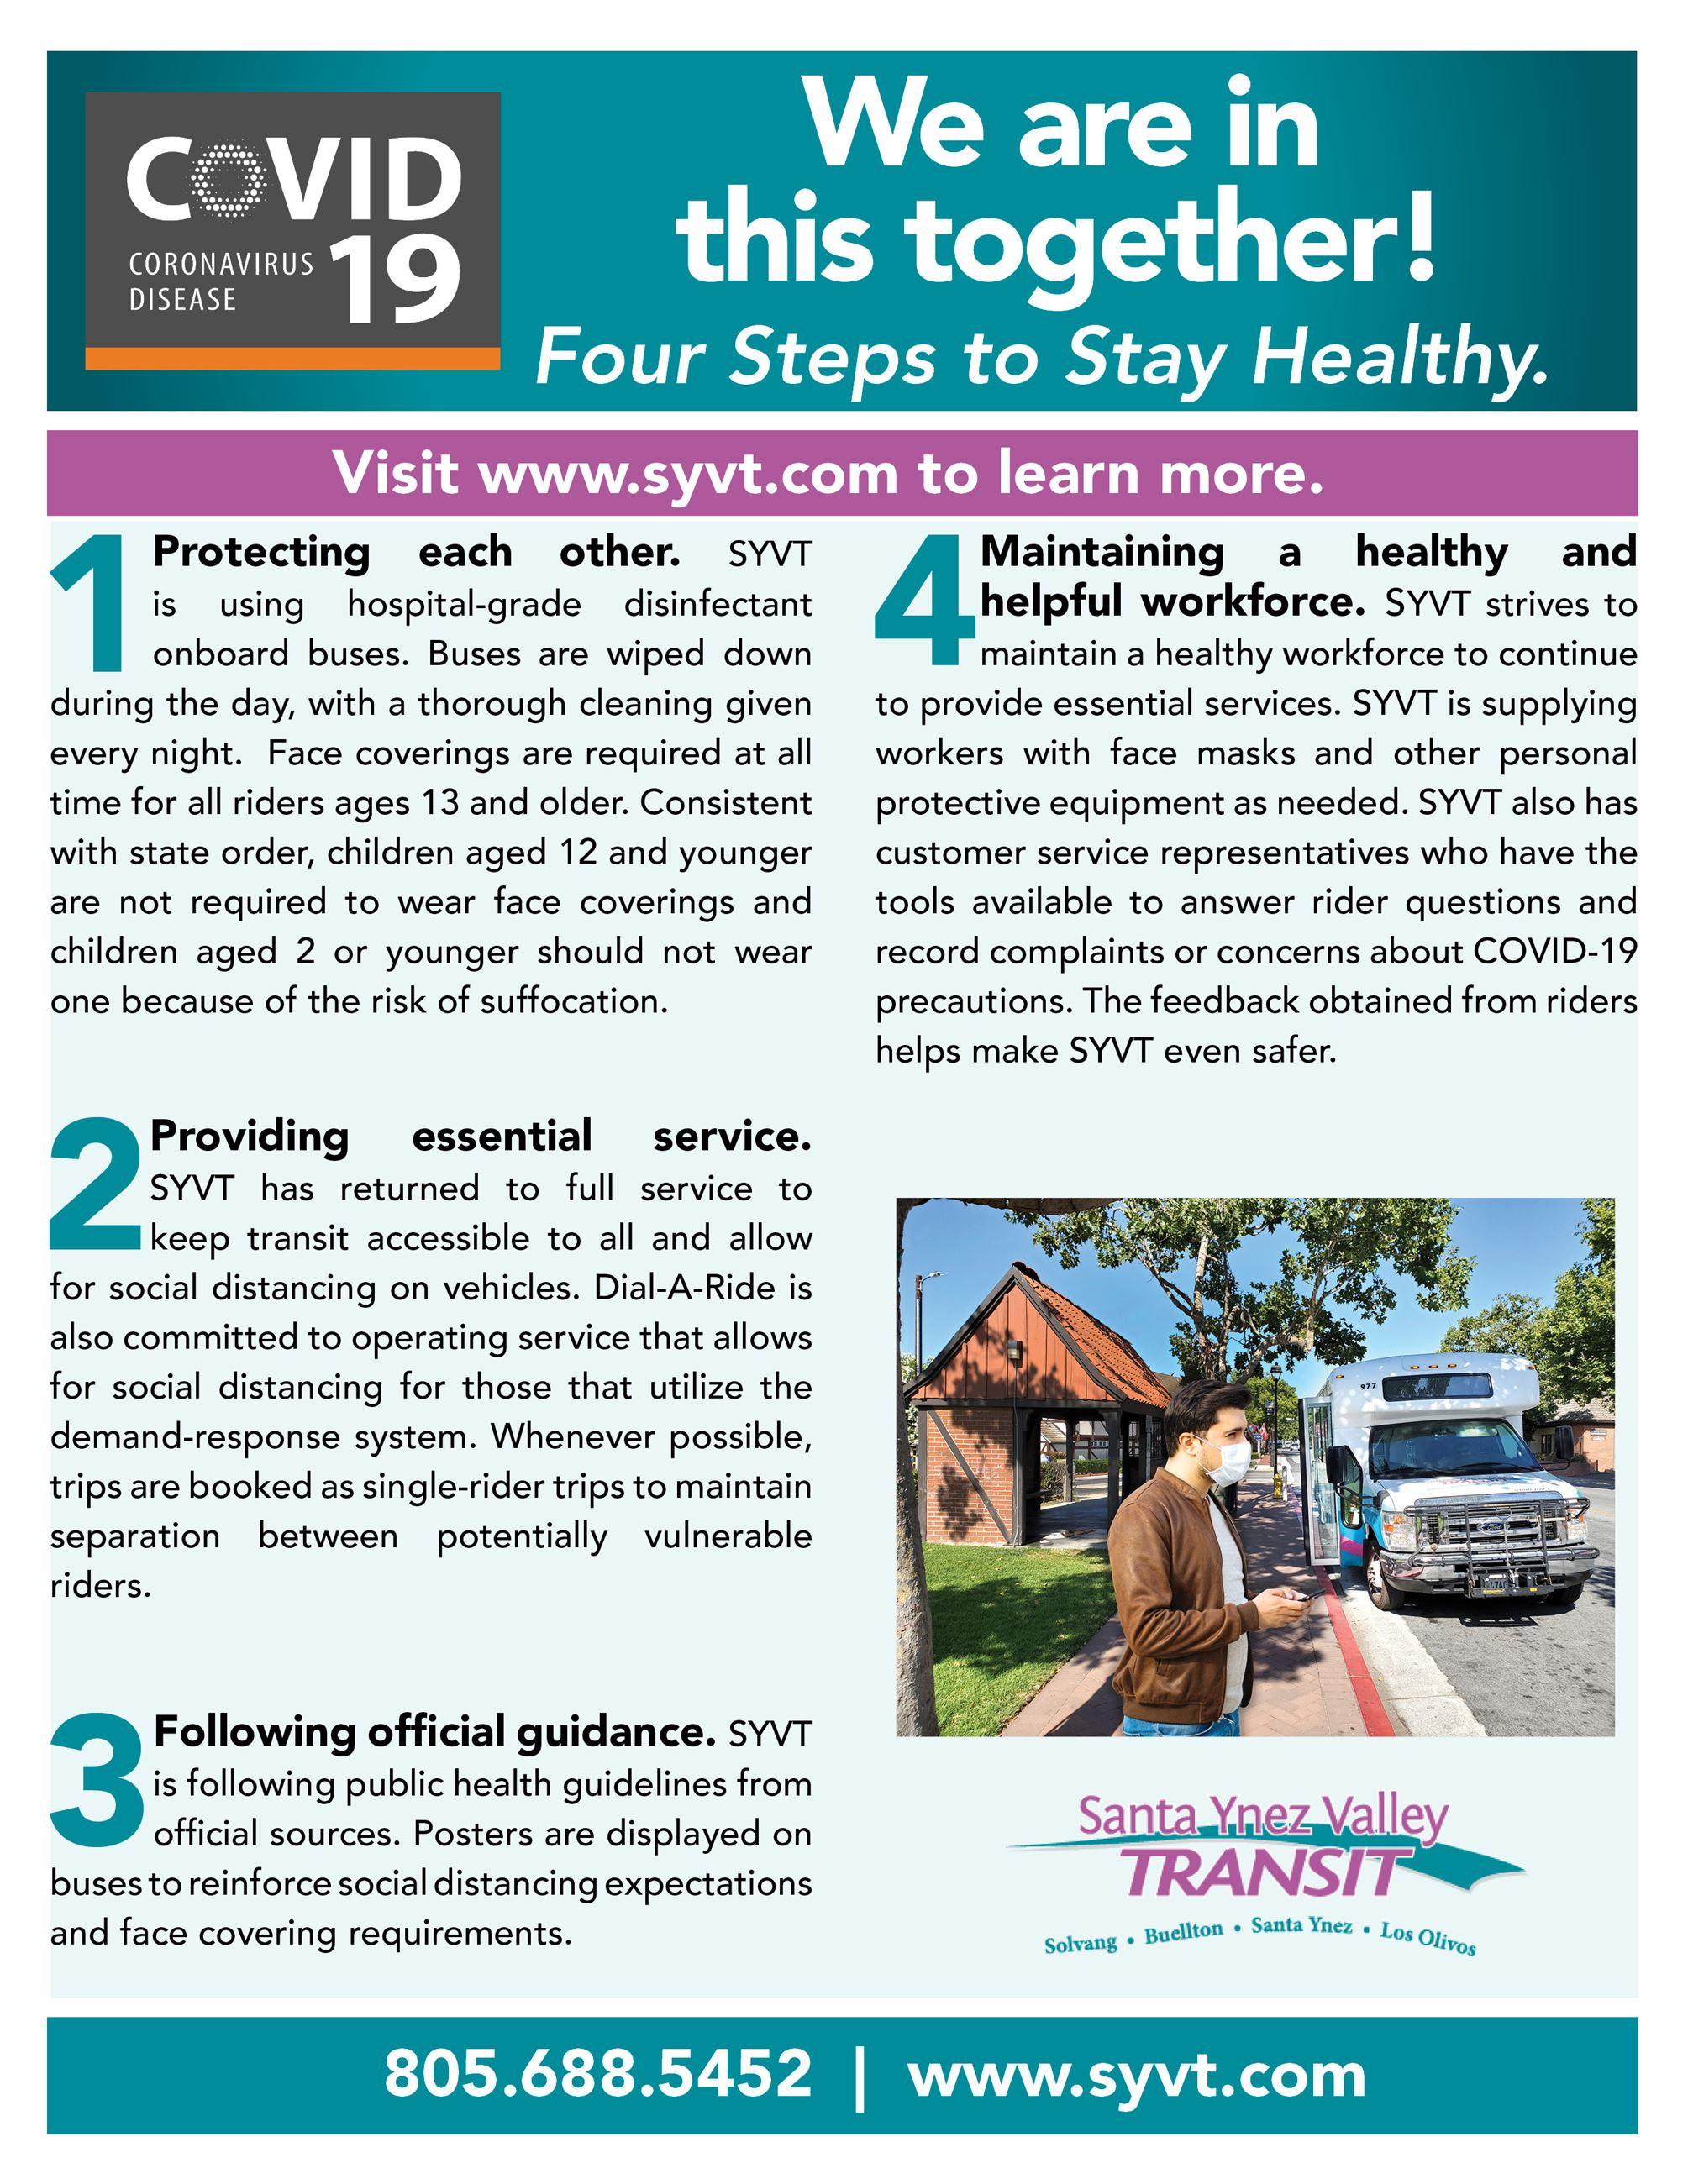 SYVT - We Are in This Together - 4 Step Plan To Keep You Safe